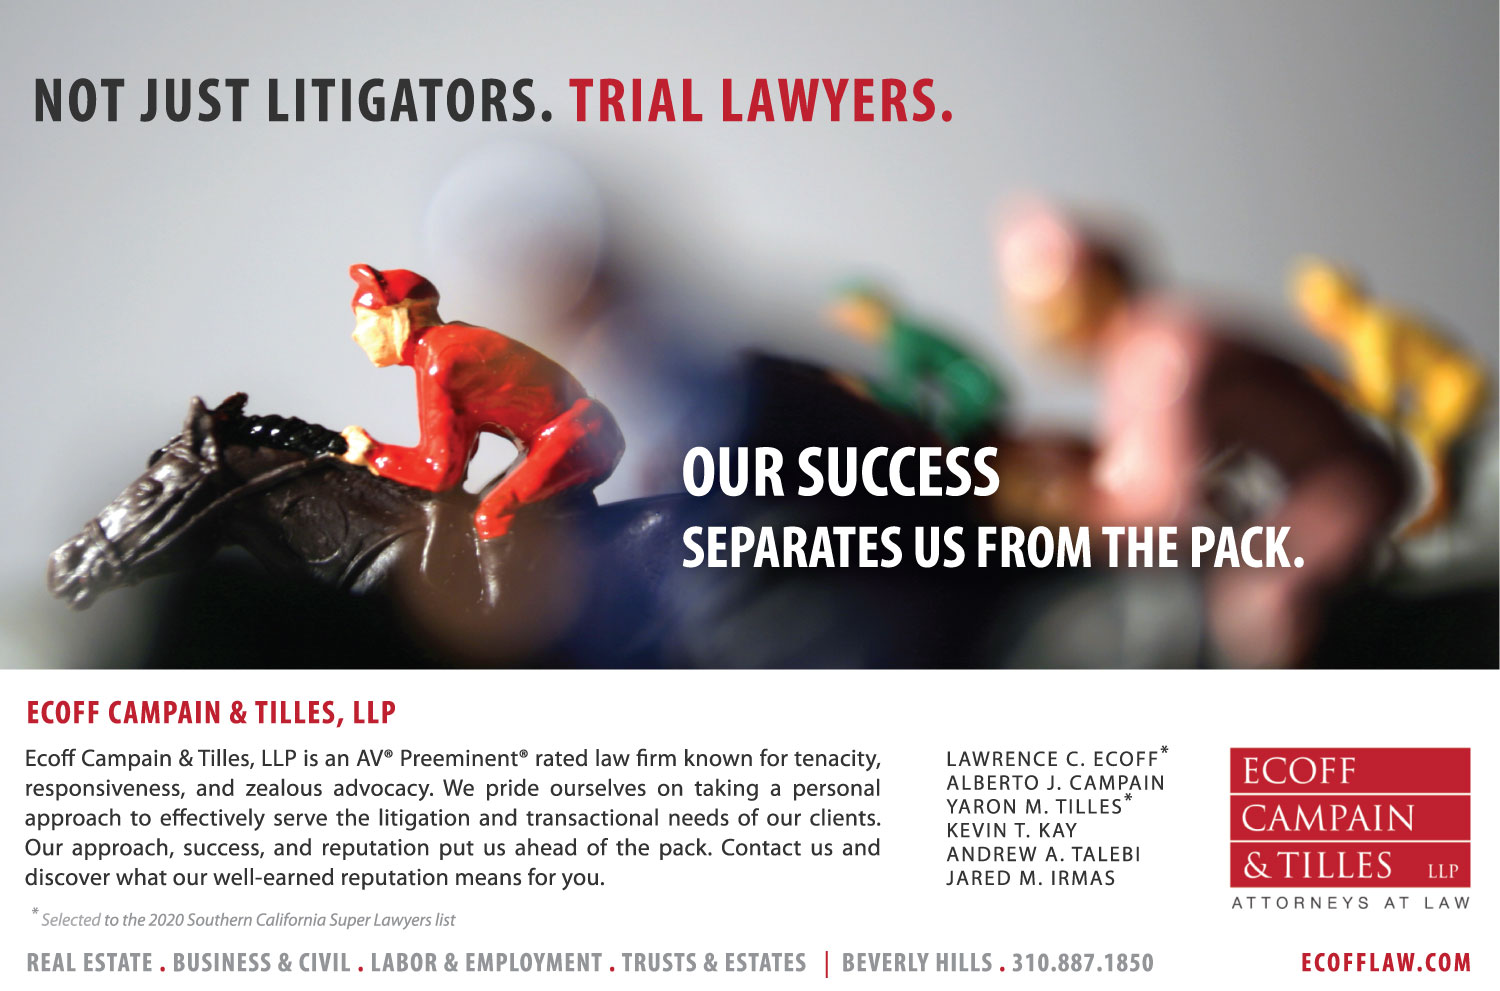 2020 Super Lawyers Ad for Ecoff Campain & Tilles, LLP